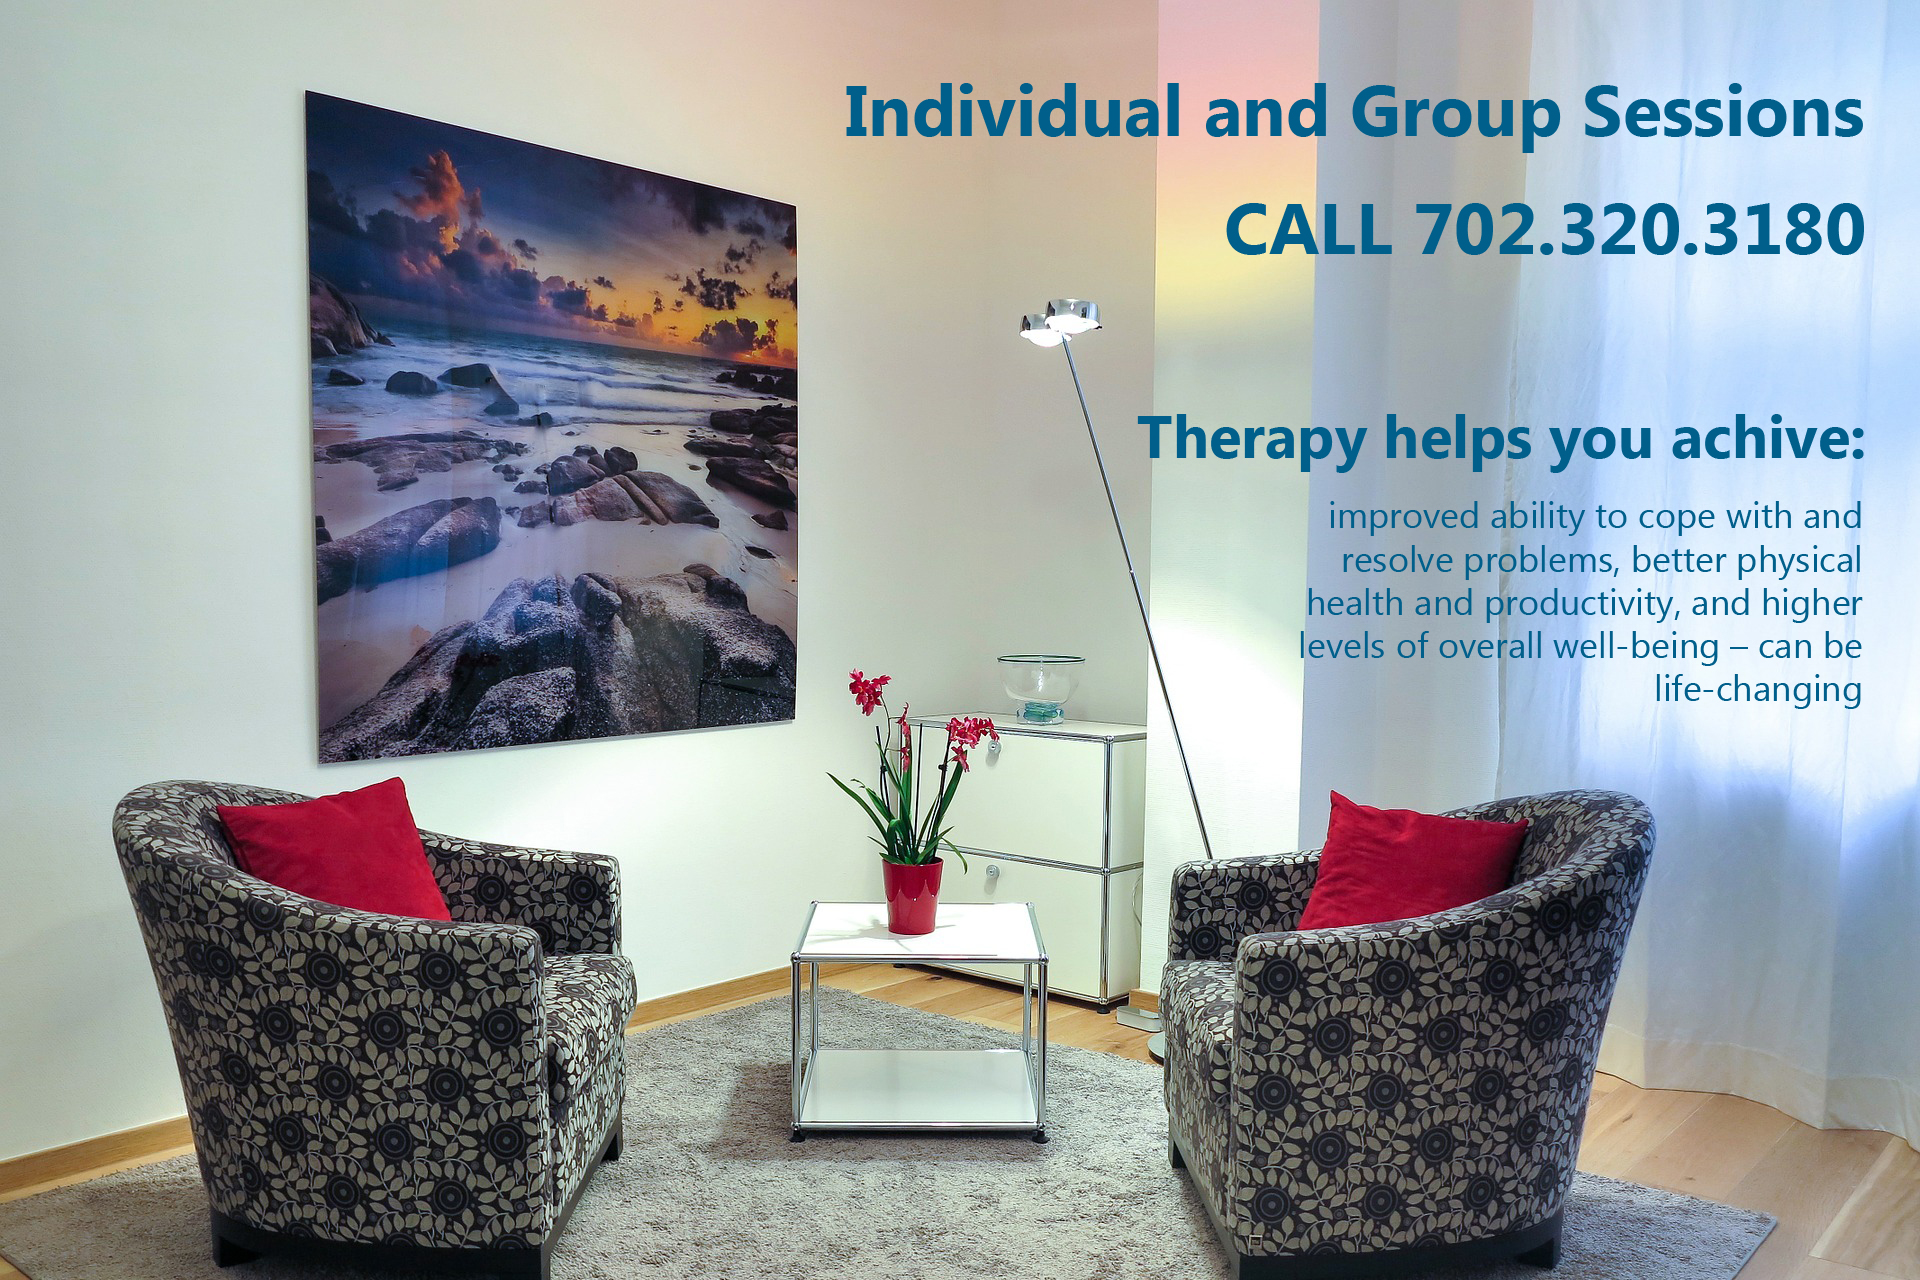 Individual and group therapy sessions at Las Vegas counseling office location